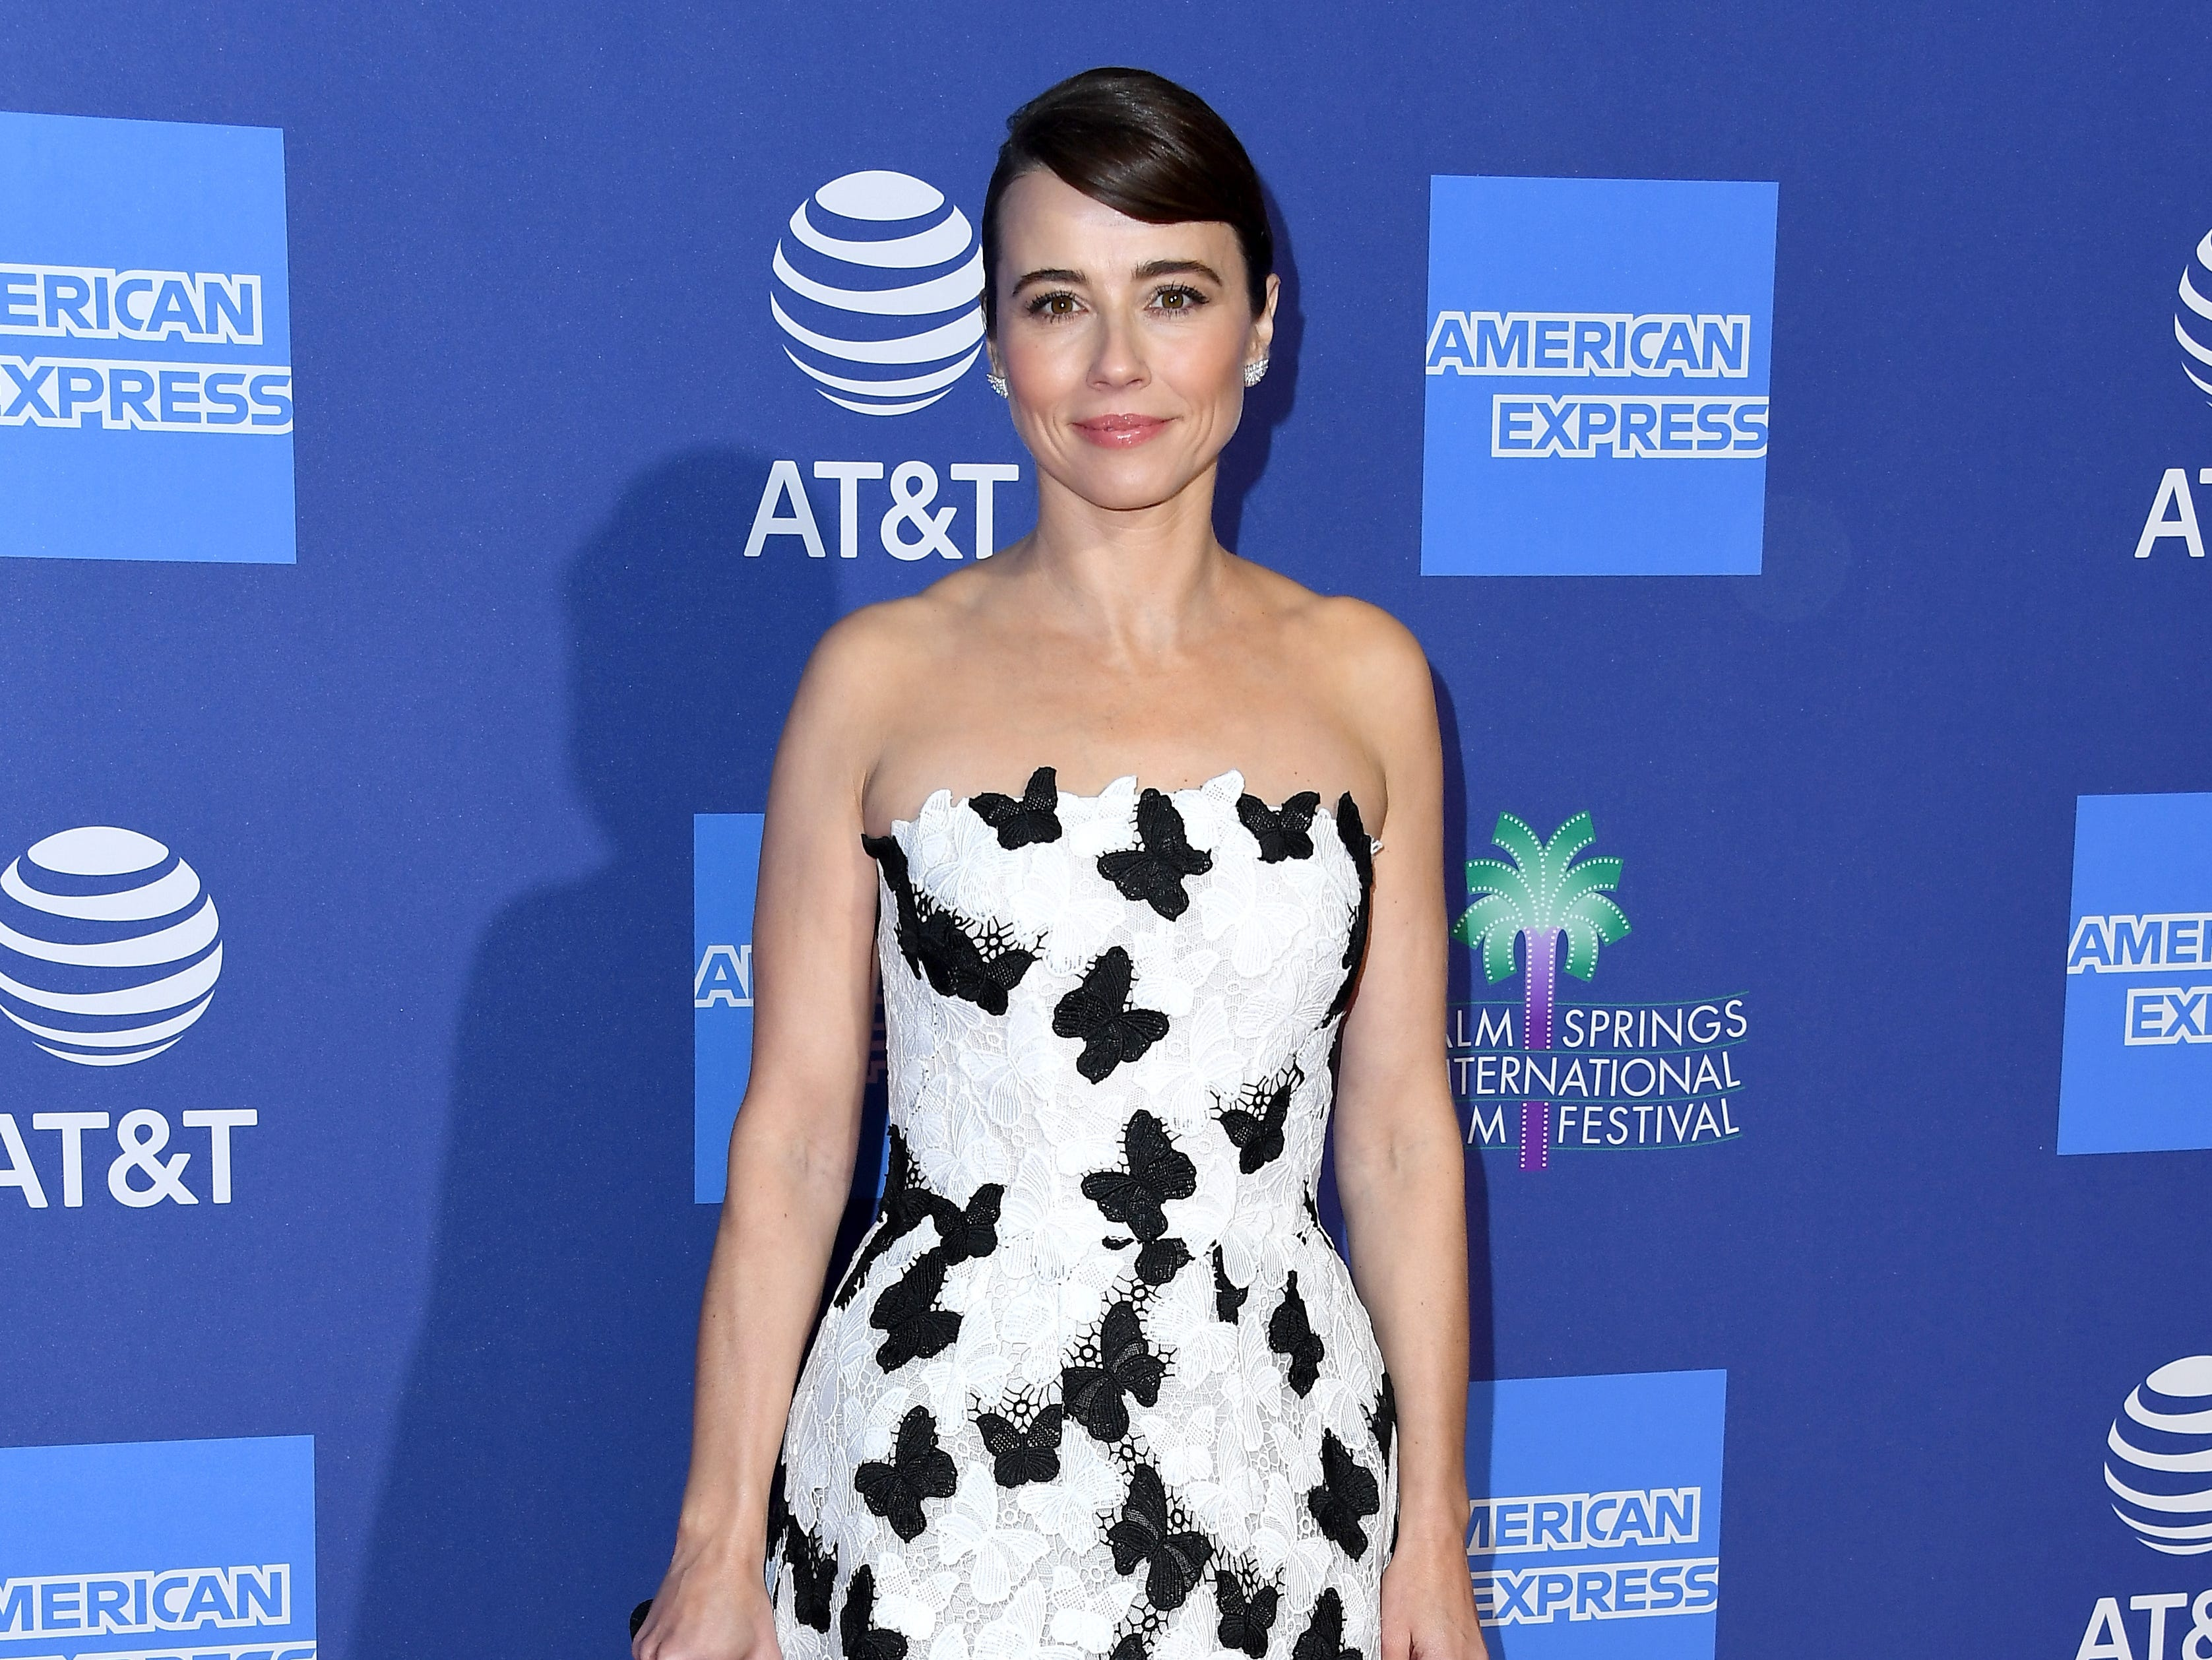 PALM SPRINGS, CA - JANUARY 03:  Linda Cardellini attends the 30th Annual Palm Springs International Film Festival Film Awards Gala at Palm Springs Convention Center on January 3, 2019 in Palm Springs, California.  (Photo by Steve Granitz/WireImage) ORG XMIT: 775256270 ORIG FILE ID: 1076915134